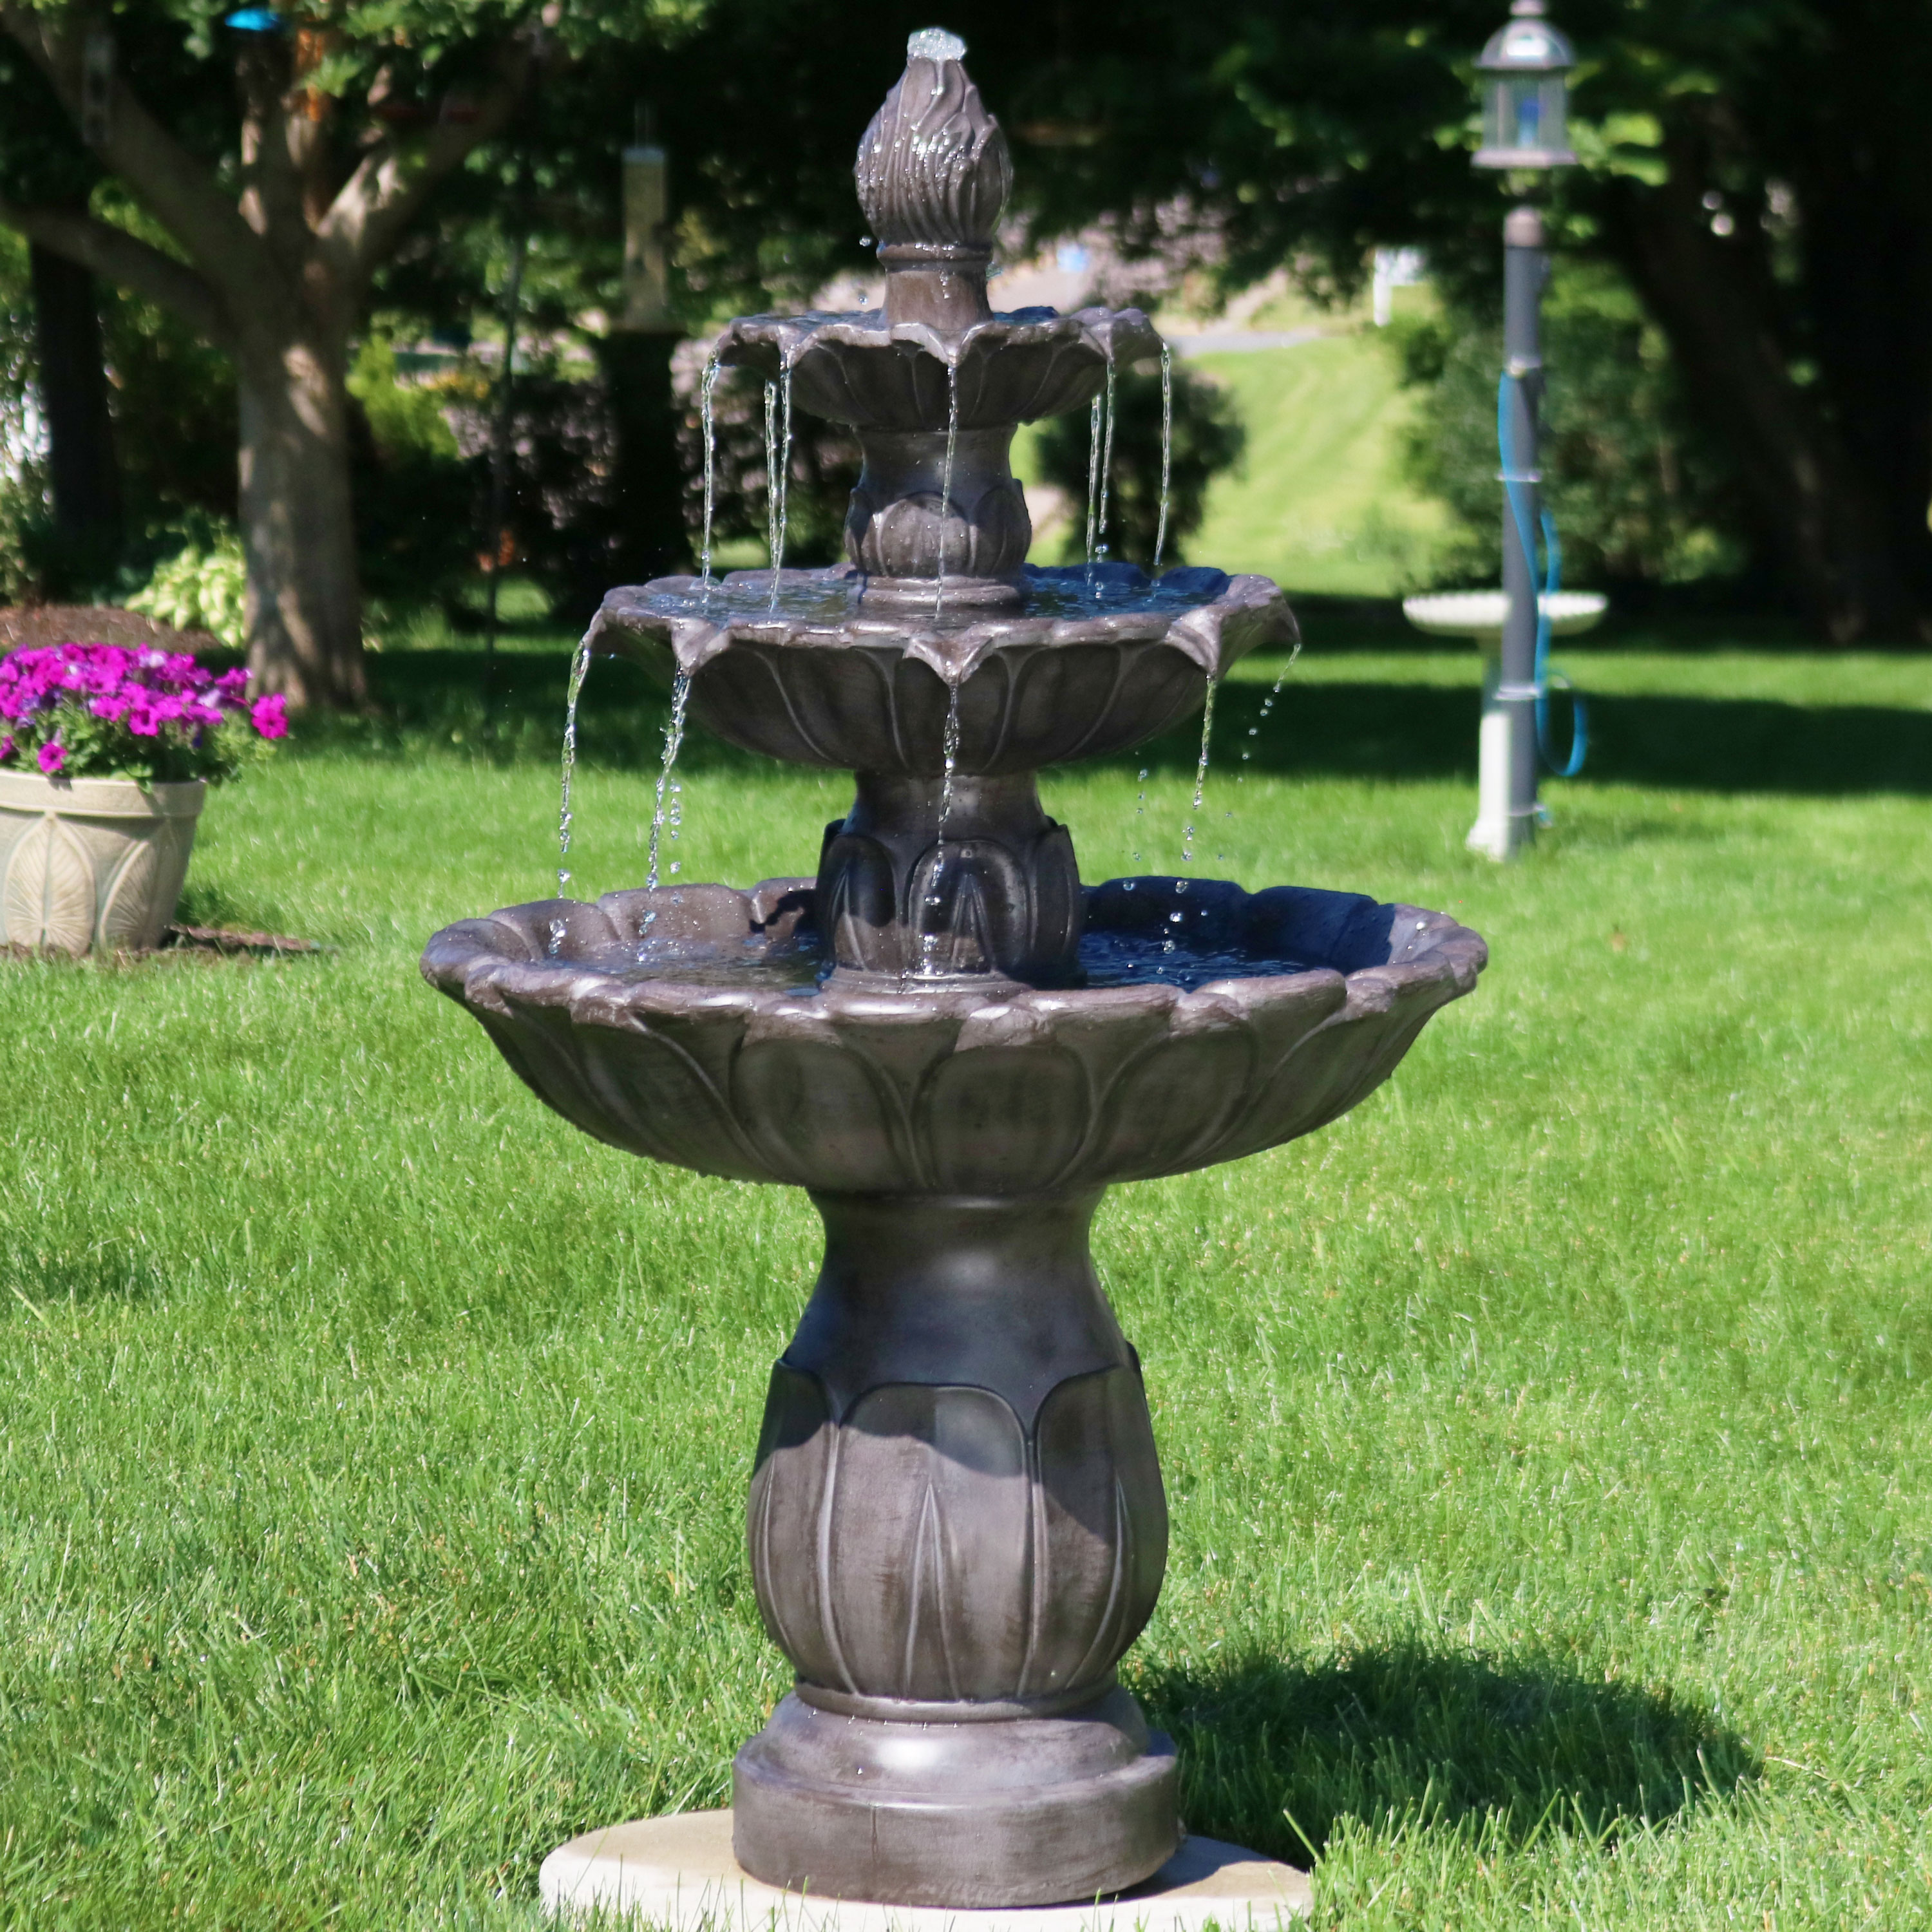 Sunnydaze Classic Tulip Three-Tiered Outdoor Garden Water Fountain, Dark Brown, 46 Inch Tall by Sunnydaze Decor